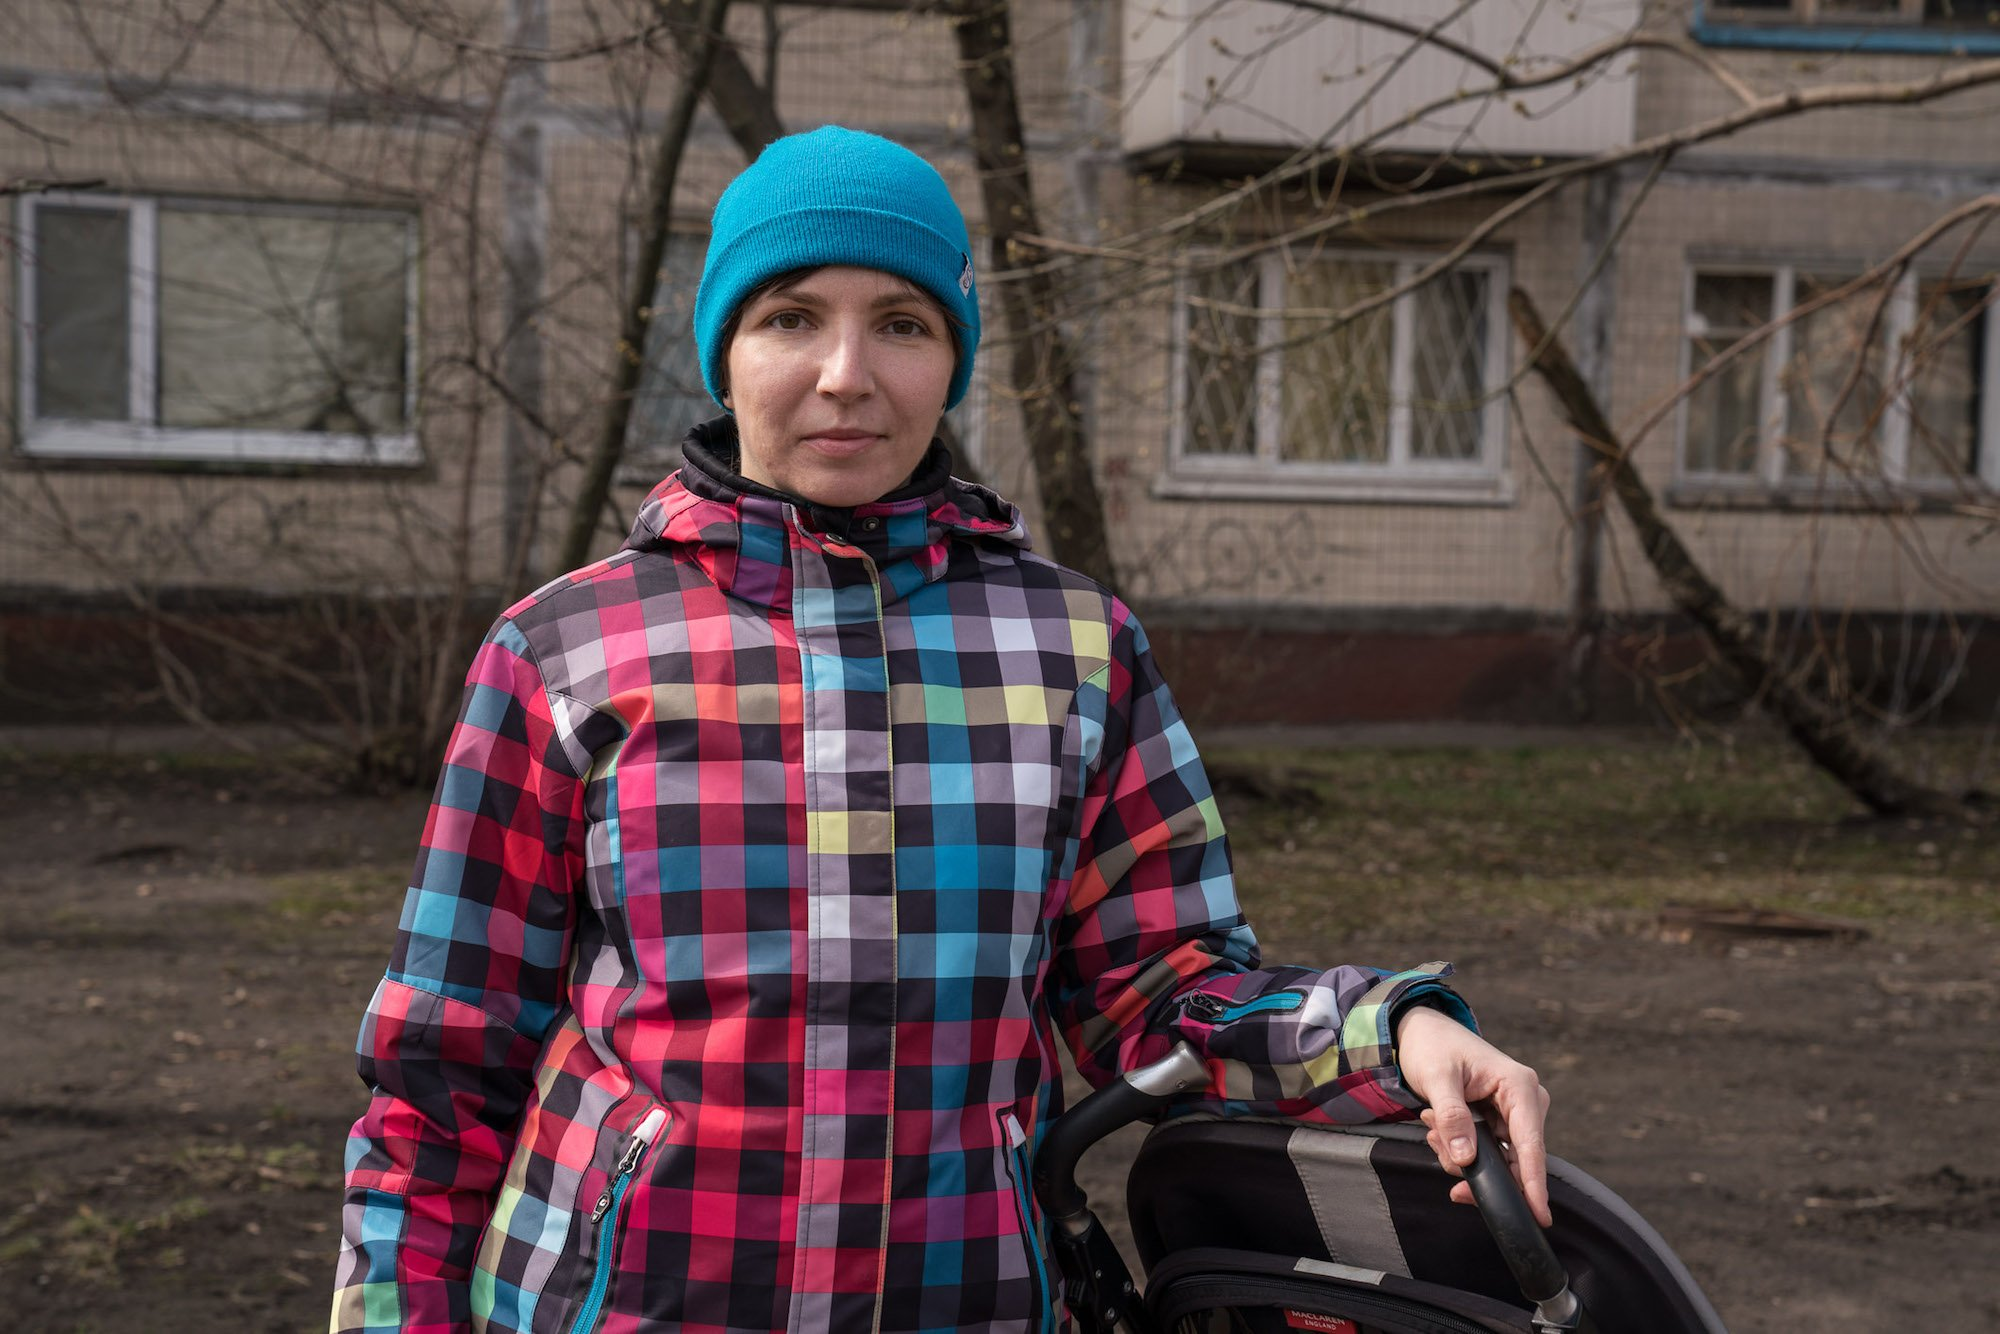 Leisia, 32, is a marketing manager who lives in a neighbouring Krushchevka with her husband and young son